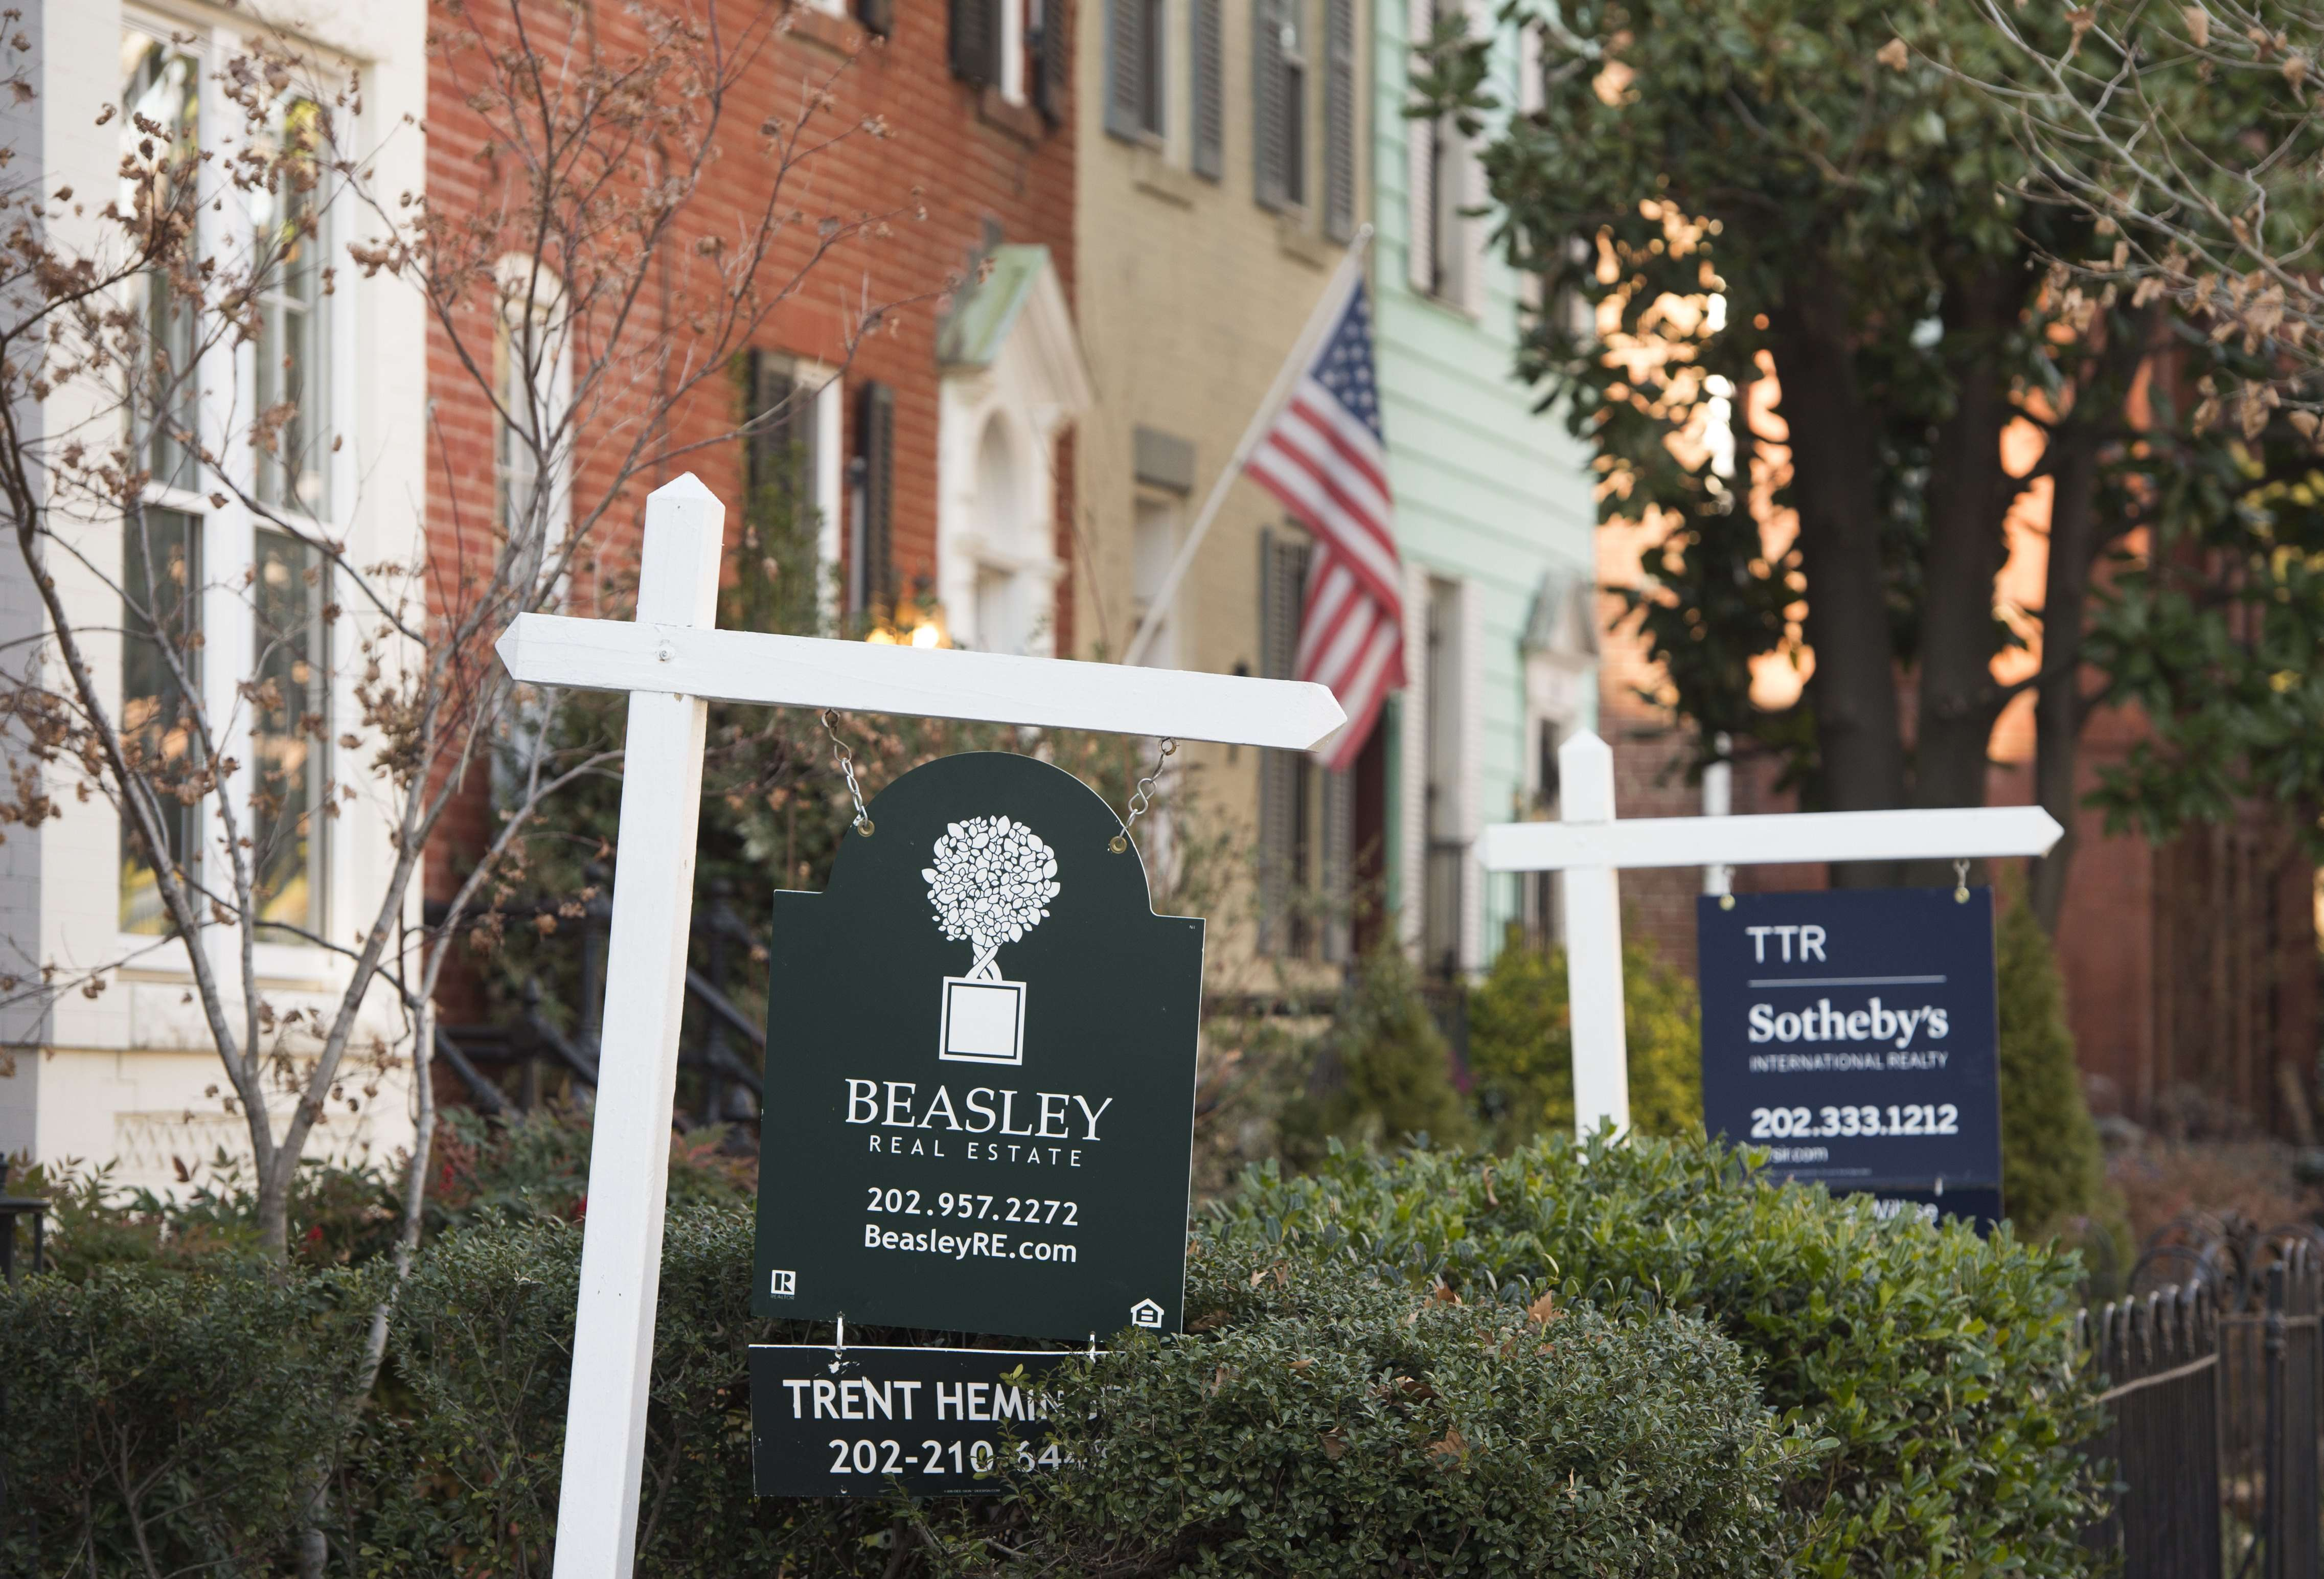 Study: Millennials really want homes, but are waiting ... for now